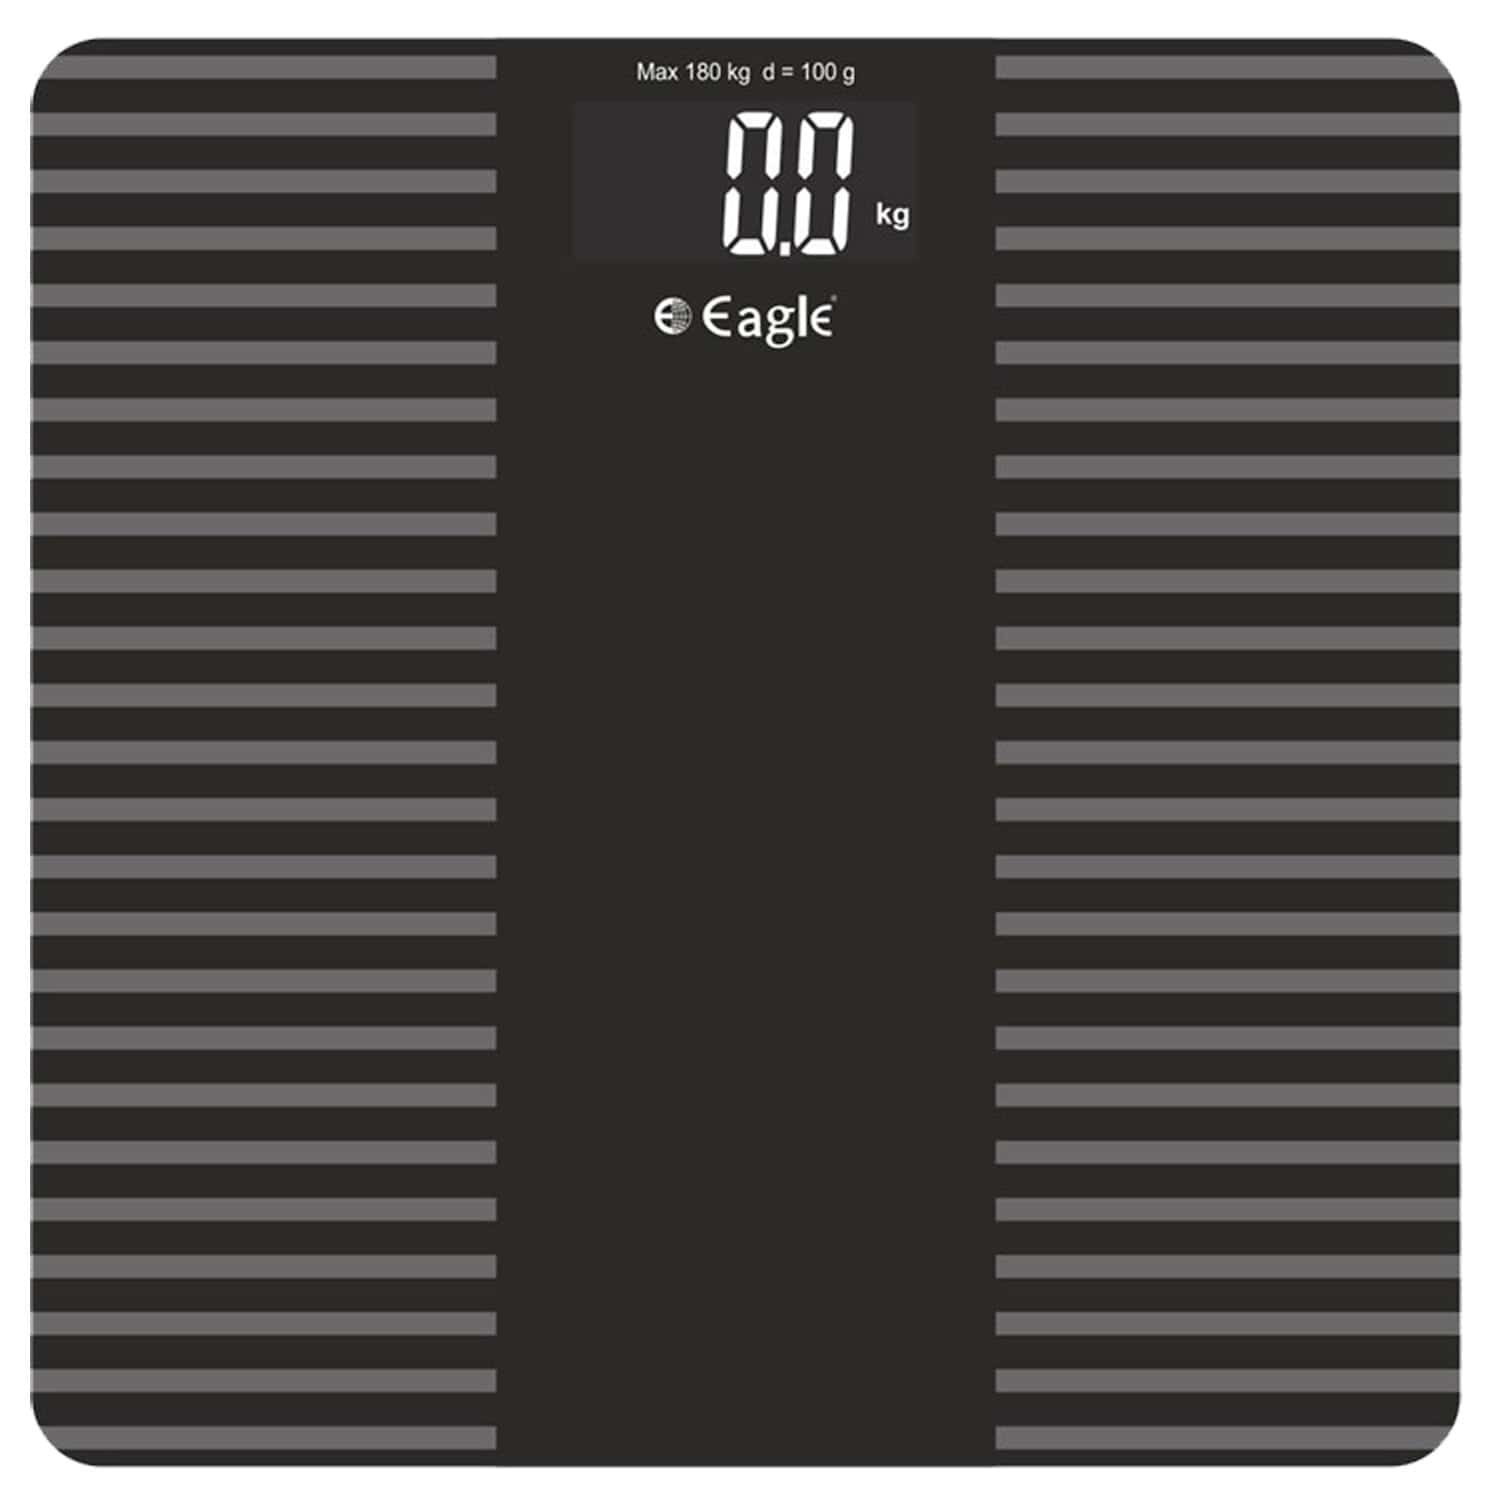 Eagle 1003a Weighing Scale